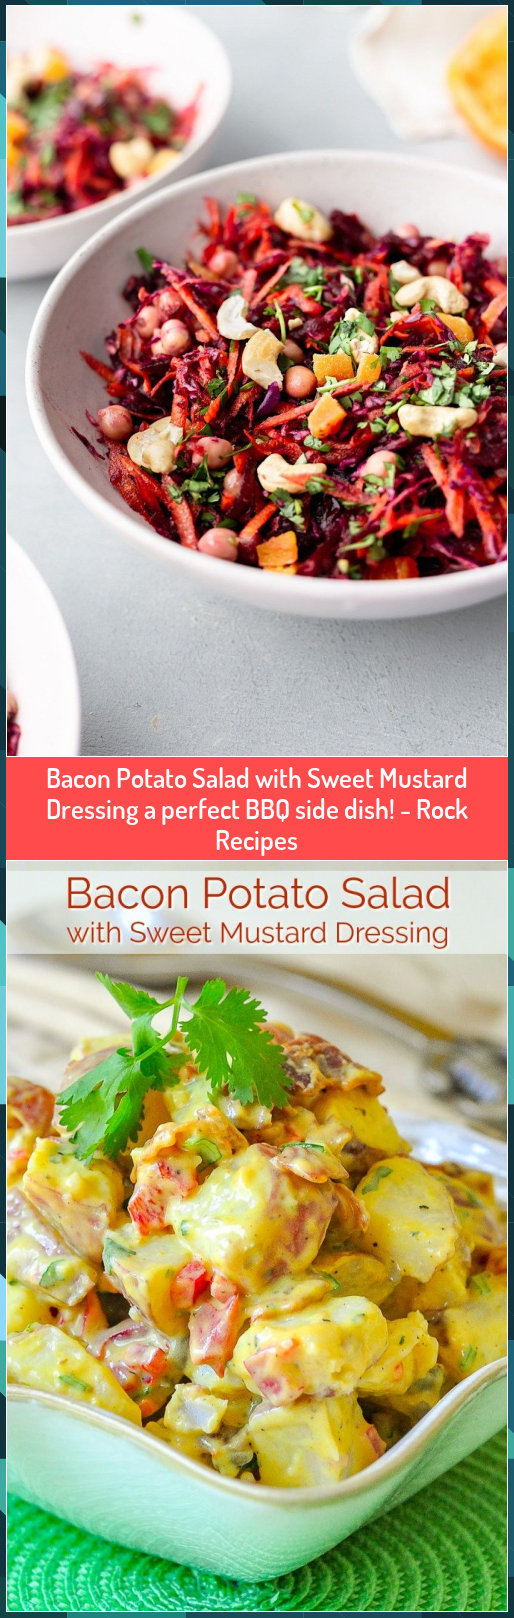 Bacon Potato Salad with Sweet Mustard Dressing a perfect BBQ side dish  Rock Recipes